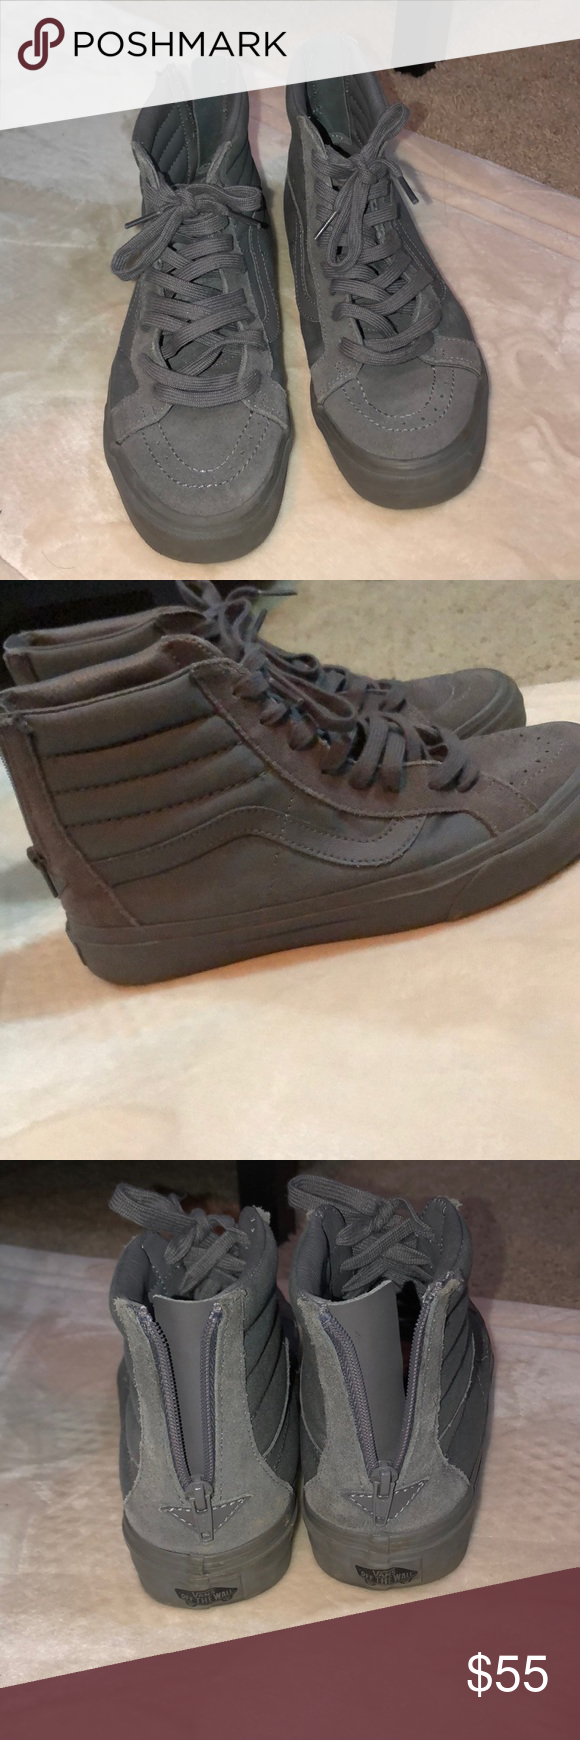 85f55b1e51 High top vans All grey high top vans with back zipper and shoe laces. In  great condition. Vans Shoes Sneakers